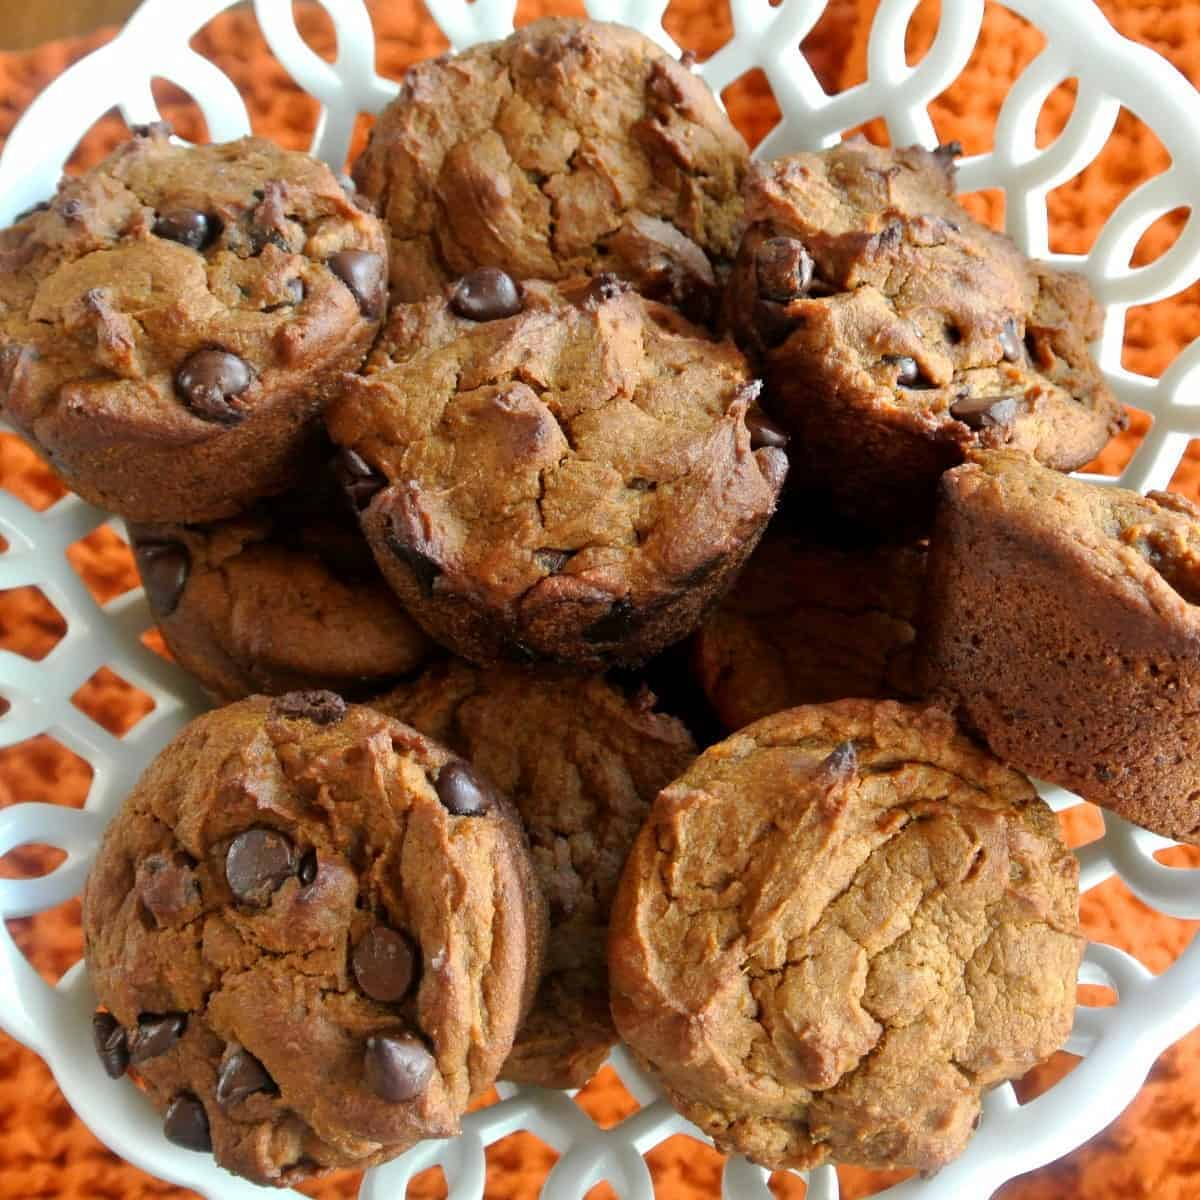 Chocolate chip vegan pumpkin muffins in a opwn weave milk glass basket.